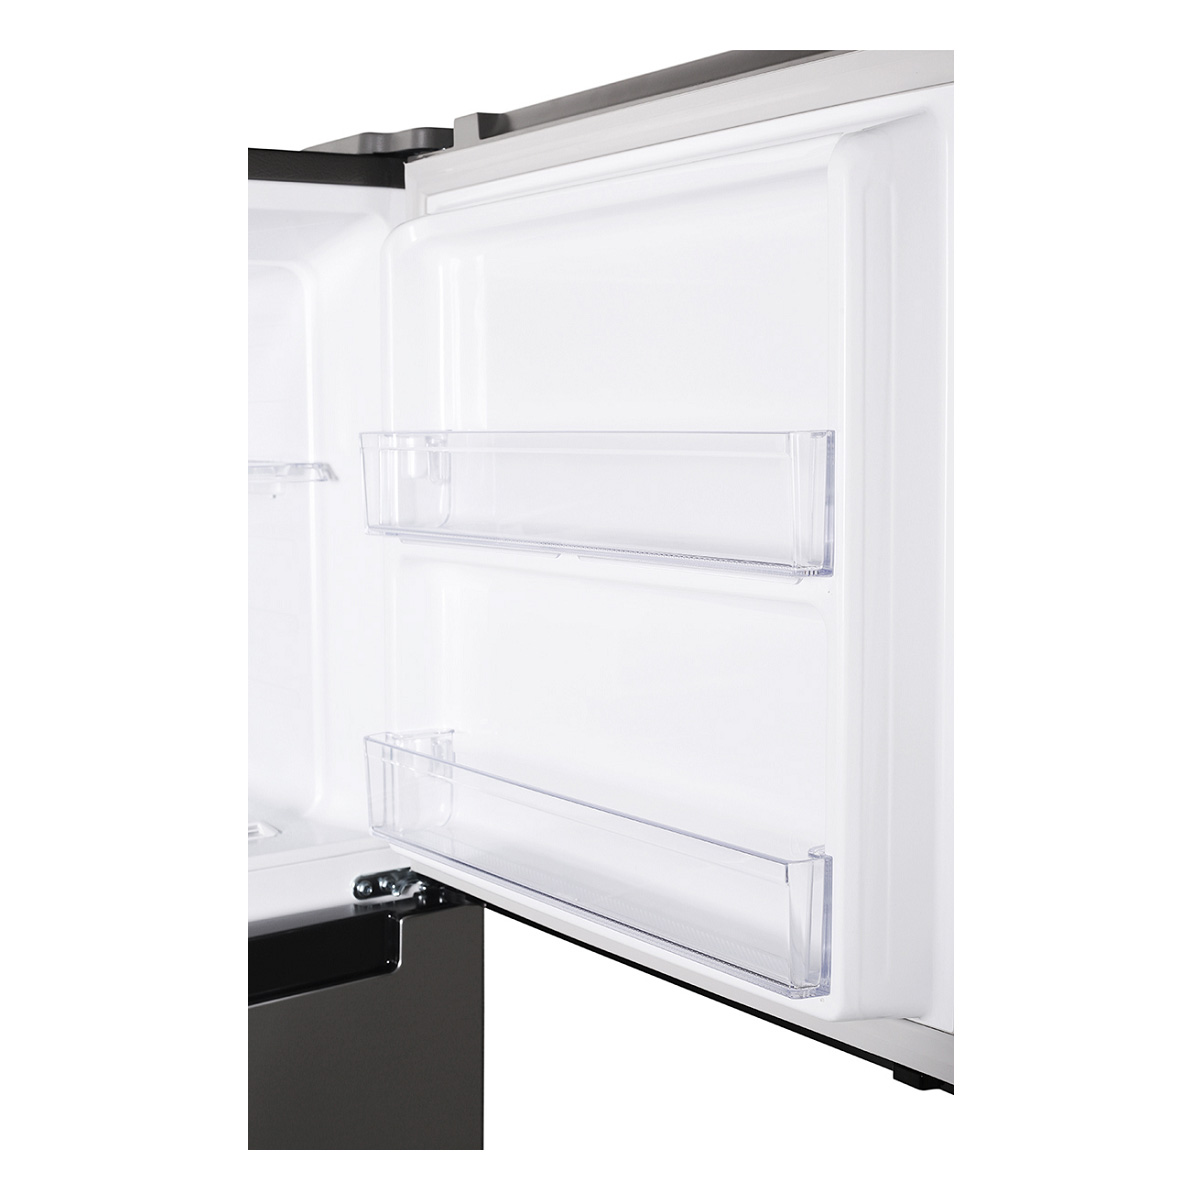 Samsung SR400LSTC 400Litres Top Mount Fridge with Twin Cooling Plus 35608